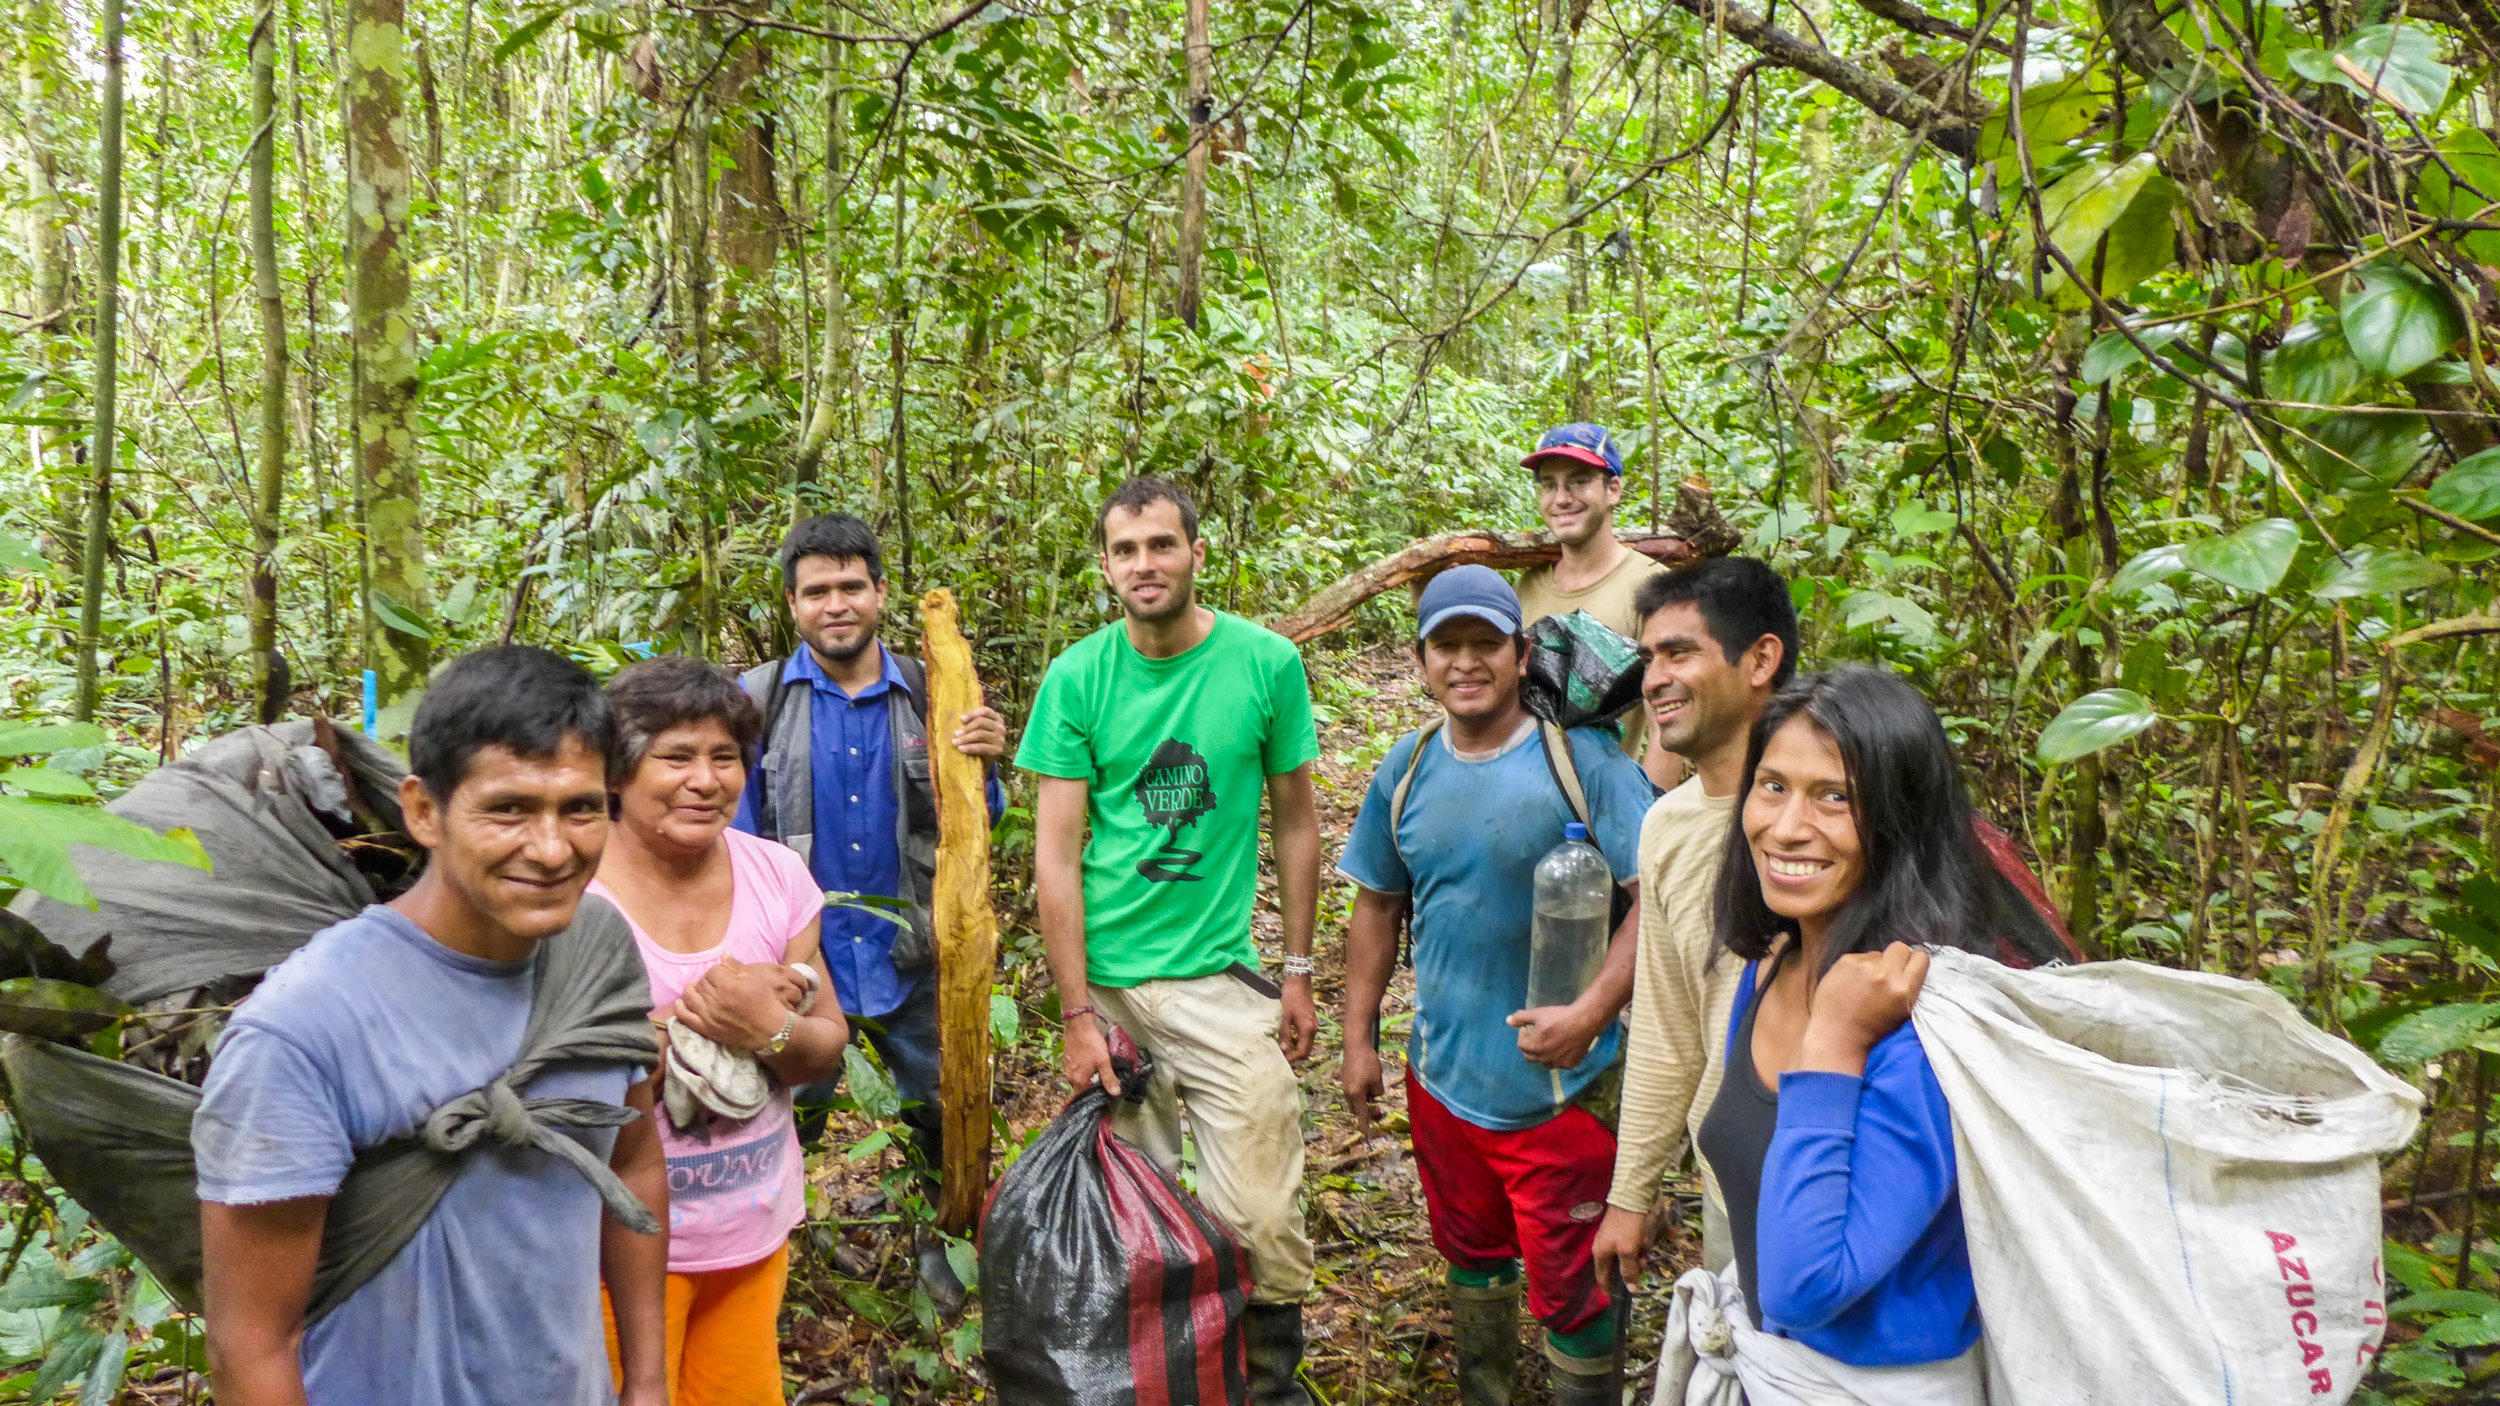 The Camino Verde team plus volunteers harvesting canelón branches and leaves in 2016.